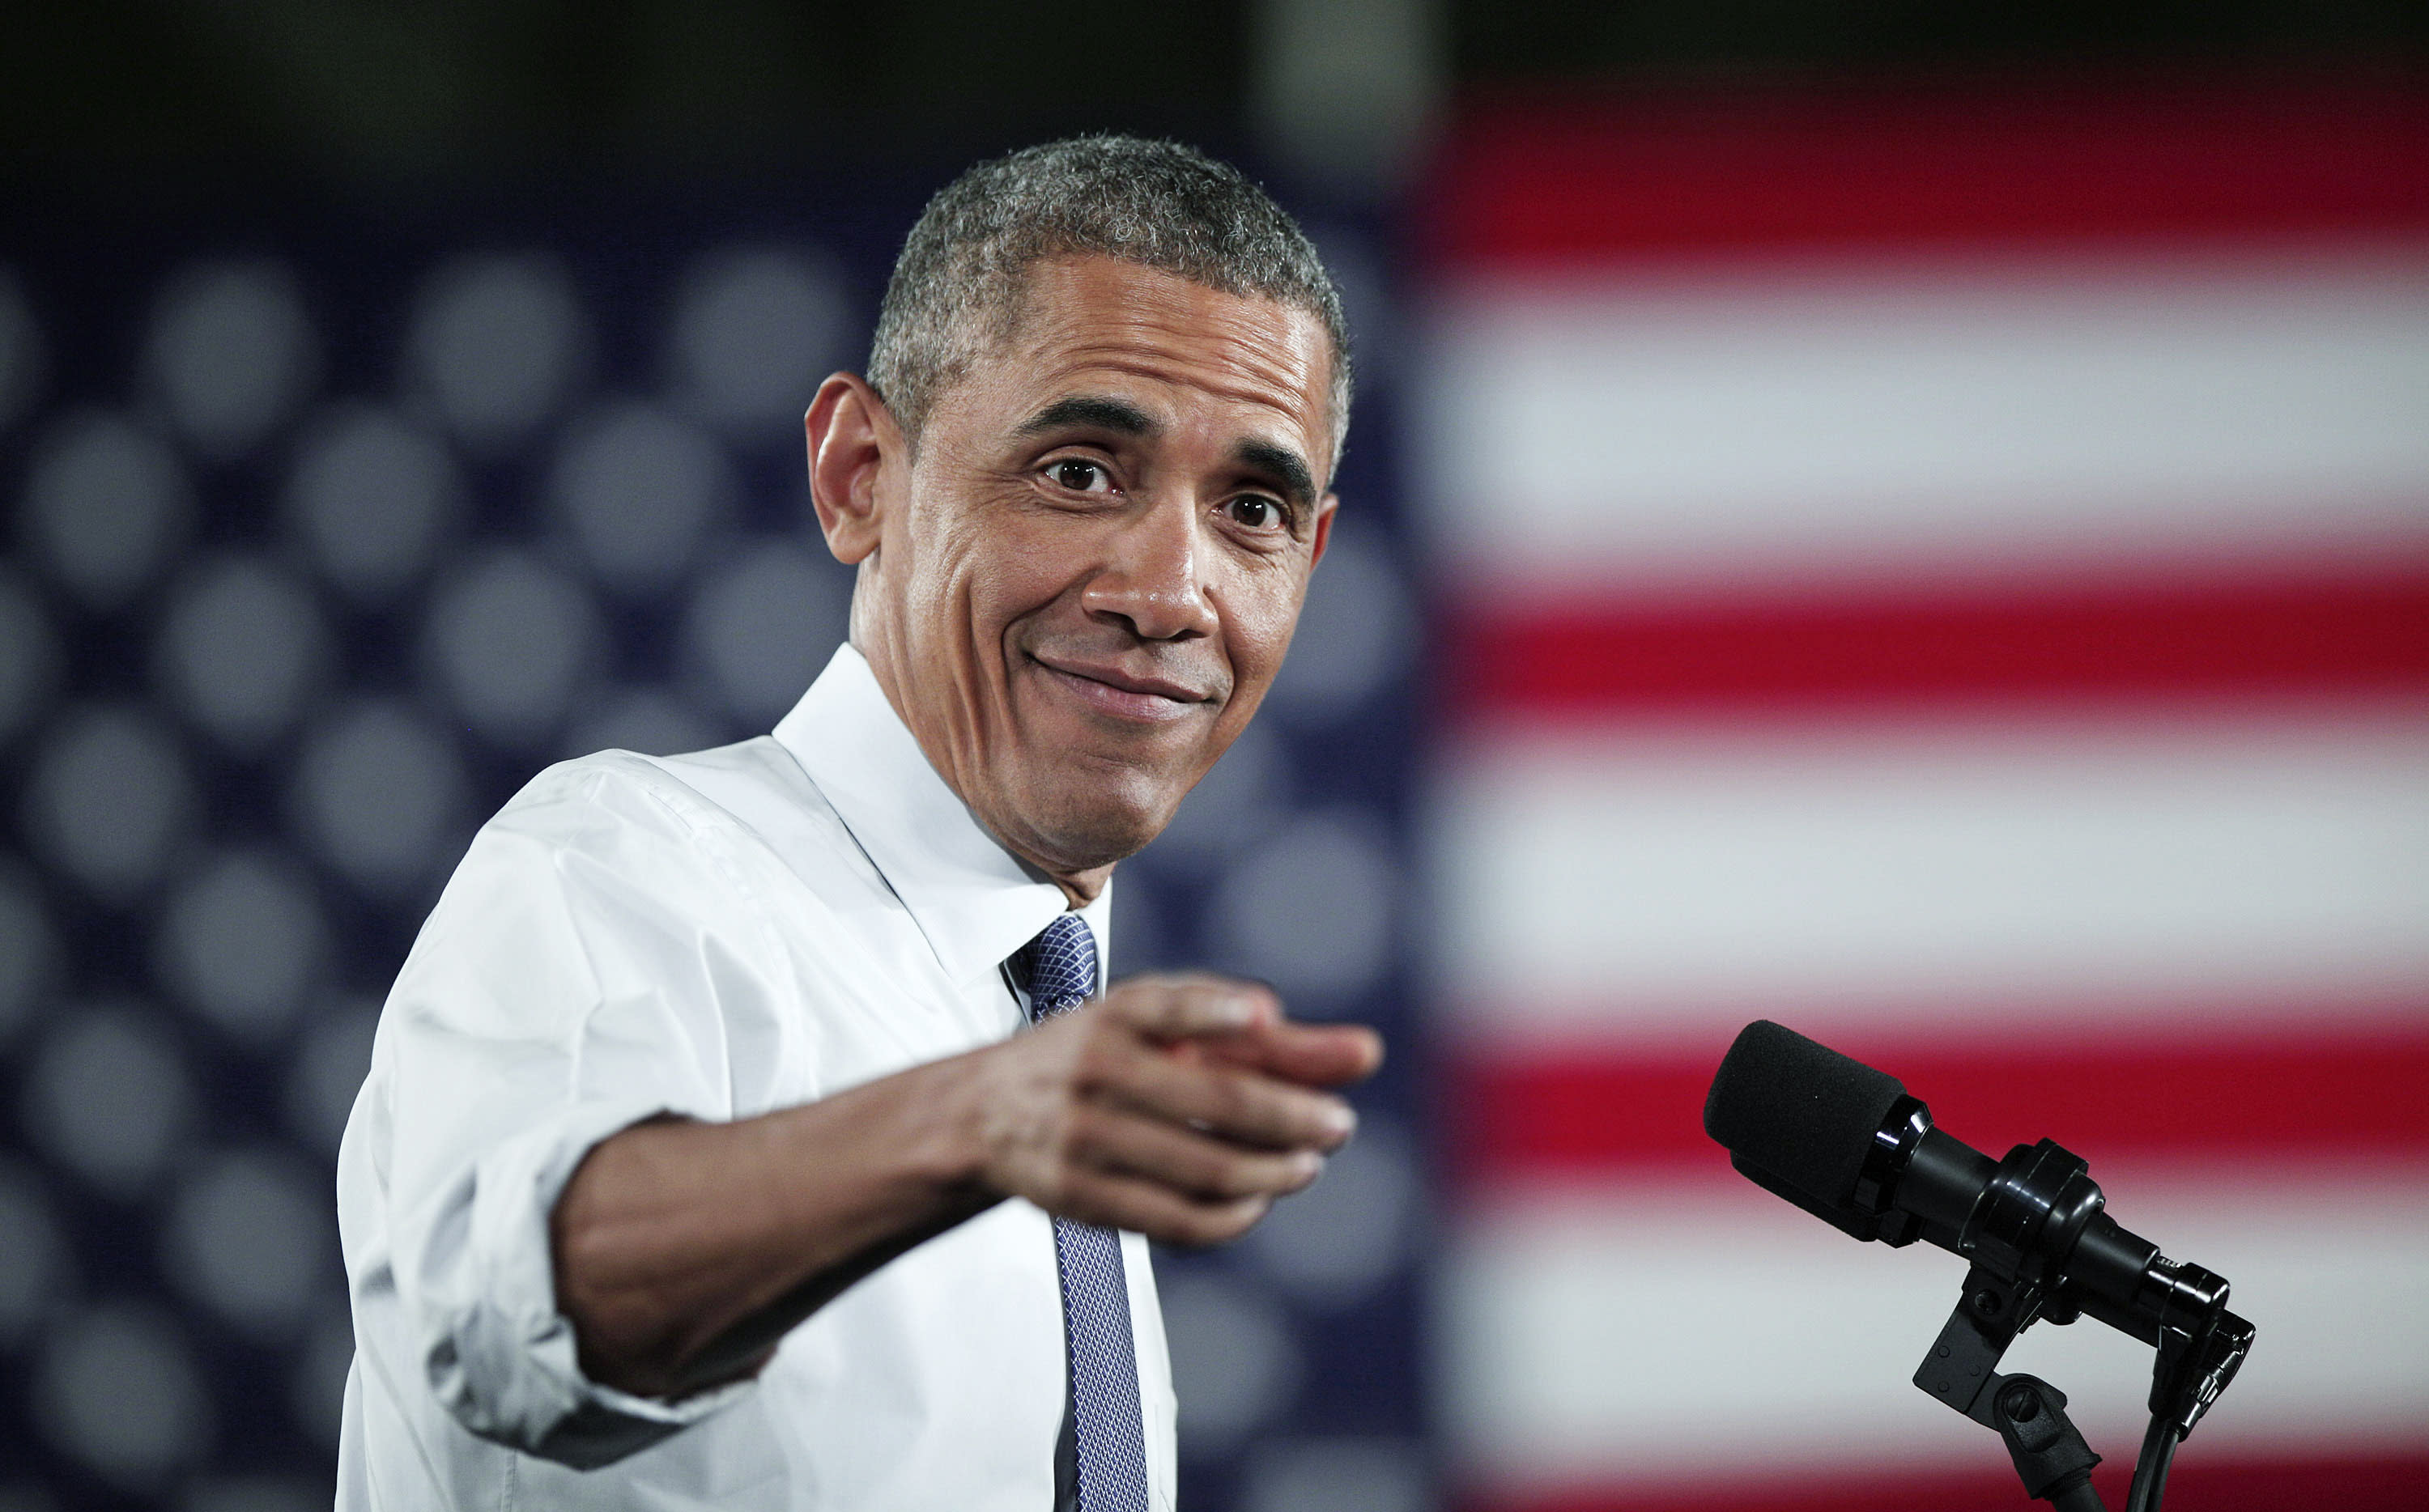 """Here's President Obama dancing to """"Hotline Bling"""" as if we need another reason to love this man"""